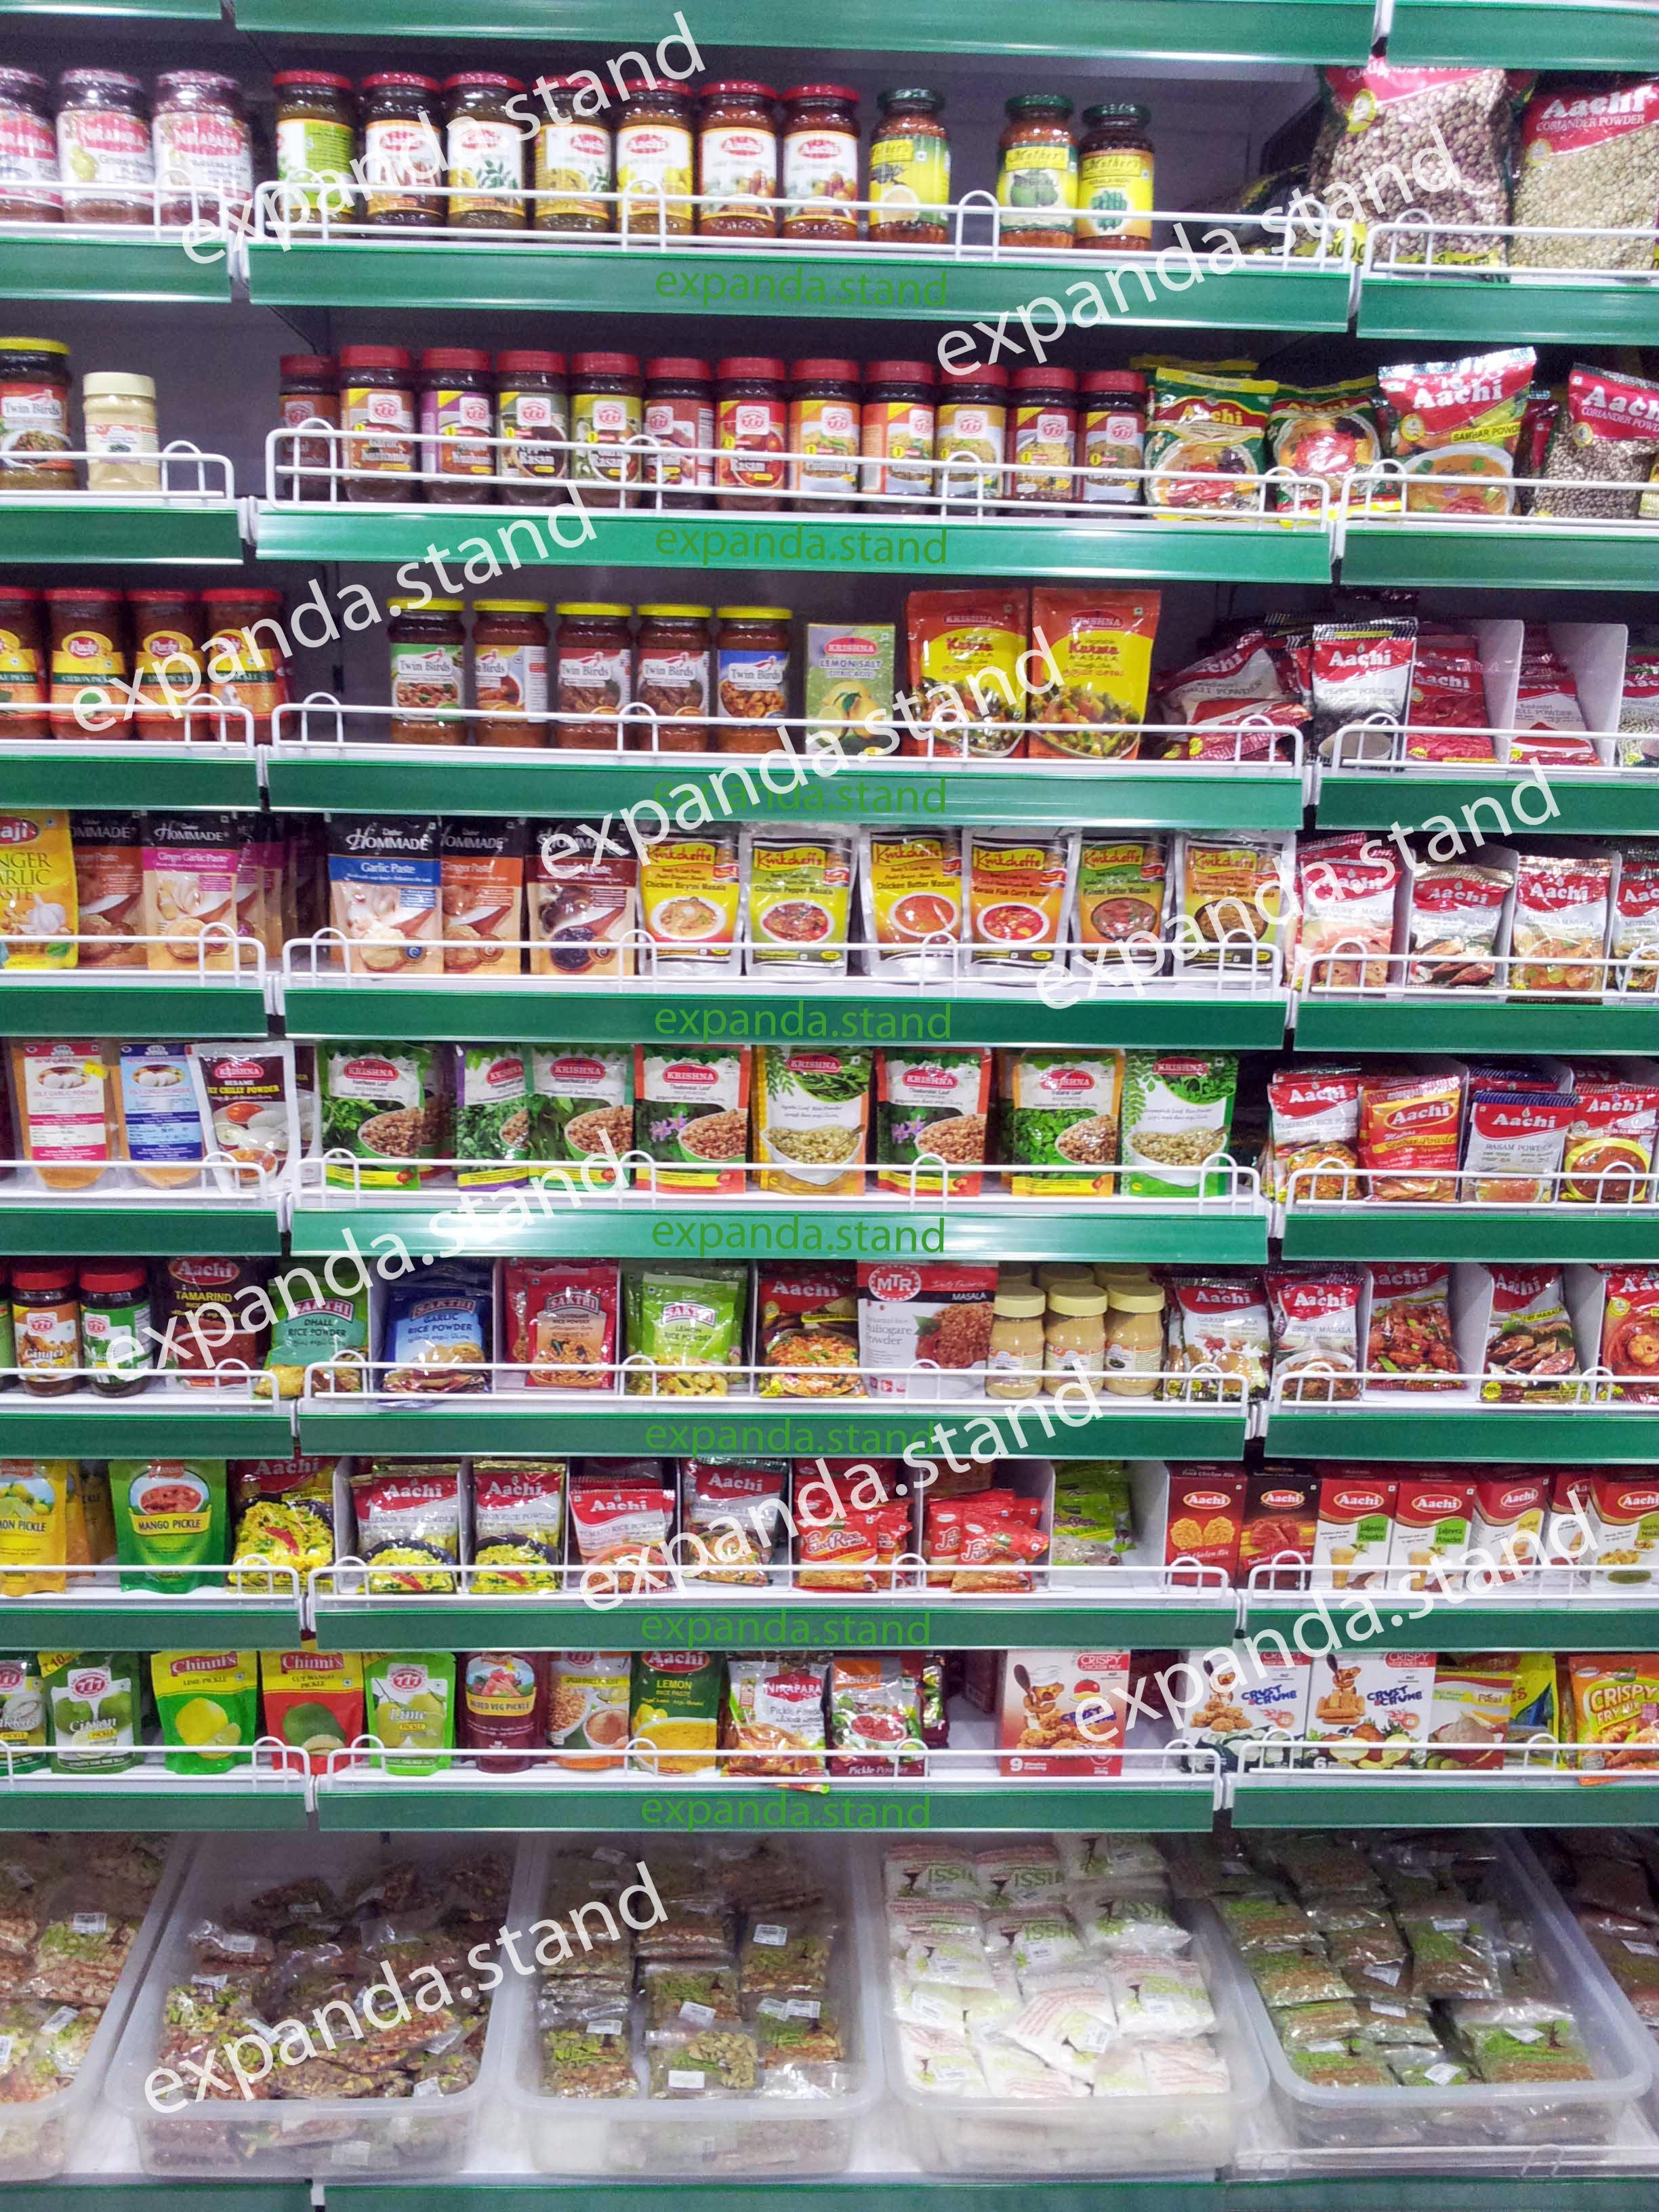 Shelvings Wall Supermarket Racks Expanda Stand